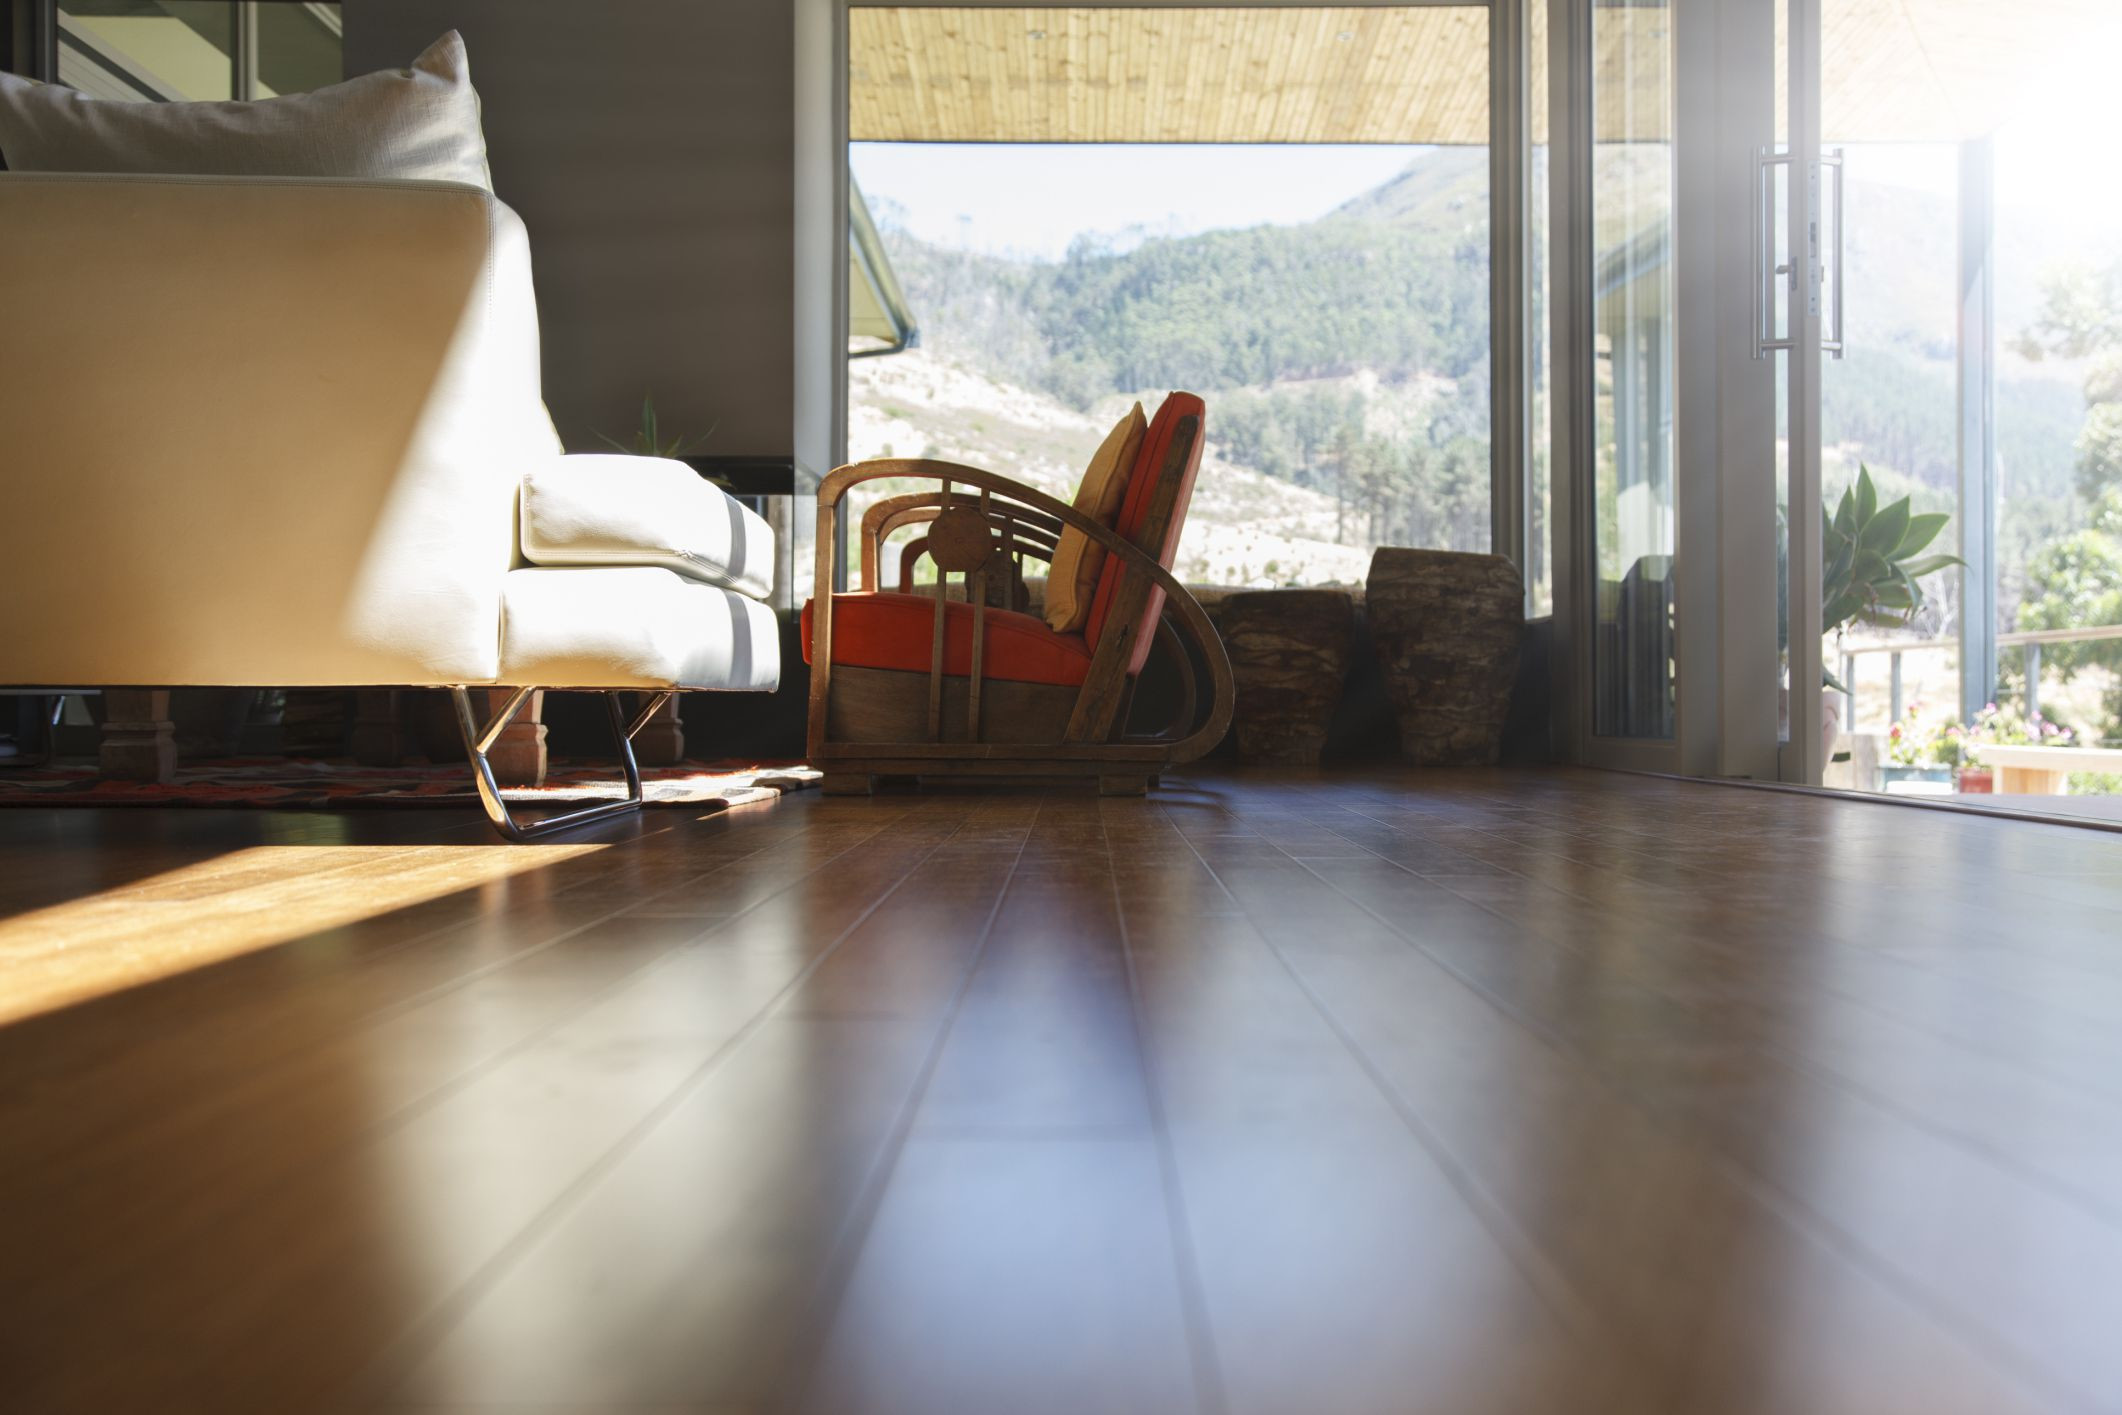 20 Cute Hardwood Floor Finishing Products 2021 free download hardwood floor finishing products of pros and cons of bellawood flooring from lumber liquidators pertaining to exotic hardwood flooring 525439899 56a49d3a3df78cf77283453d